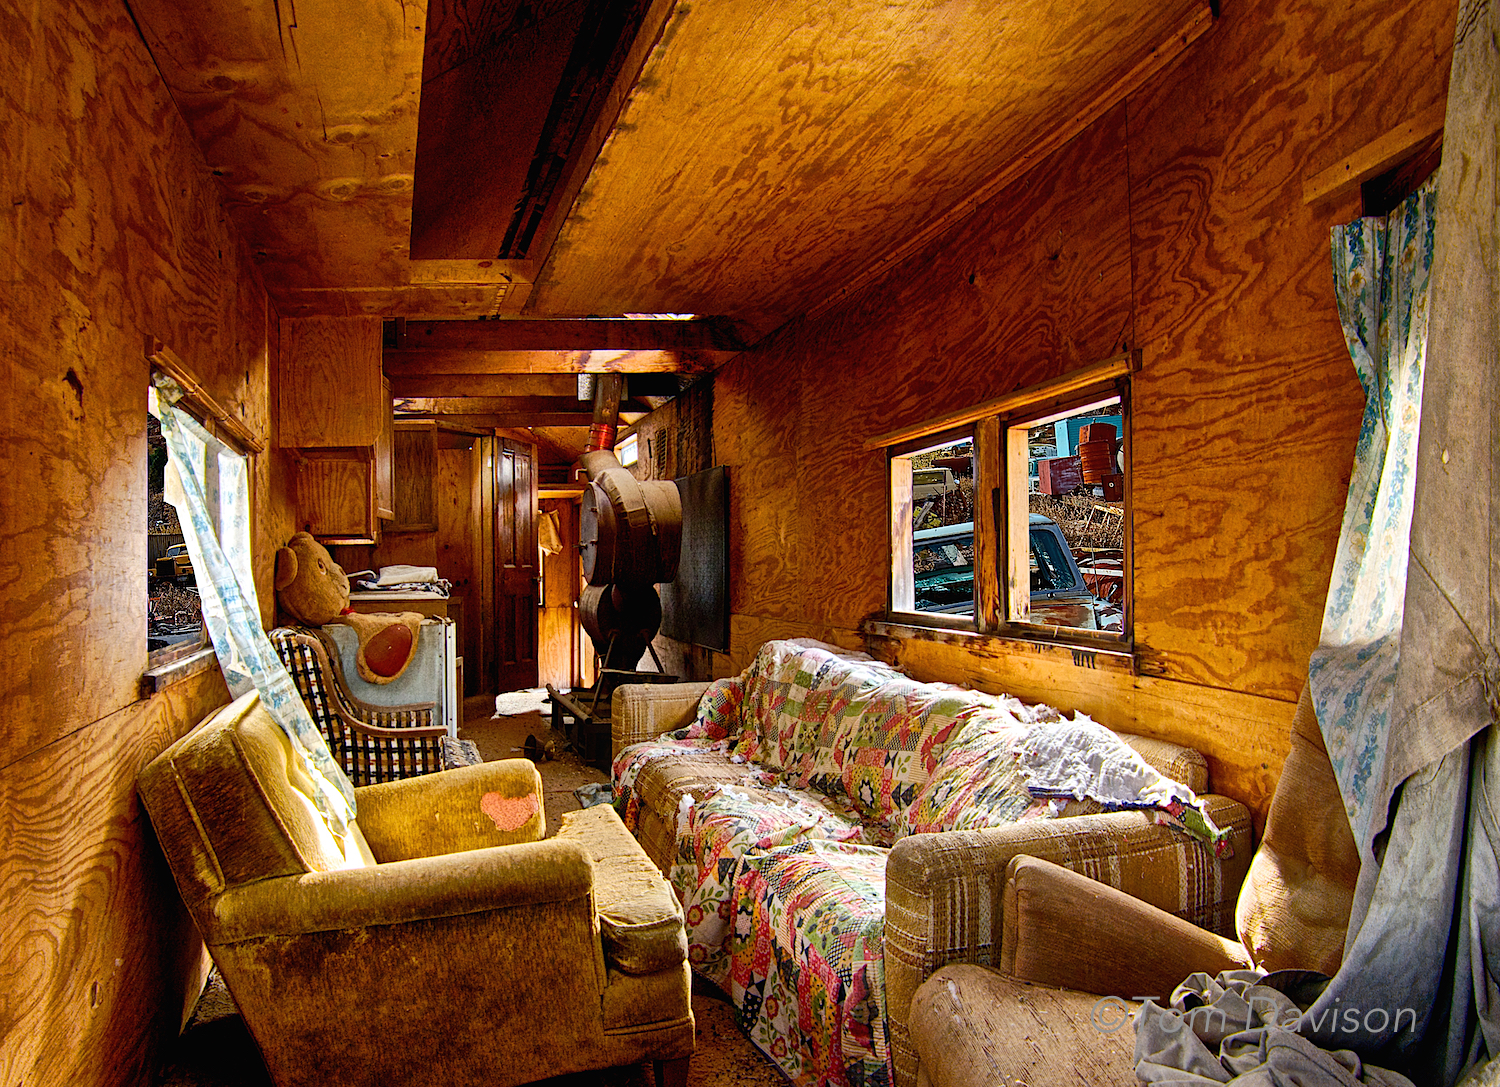 Inside the motor home. Wood paneling!